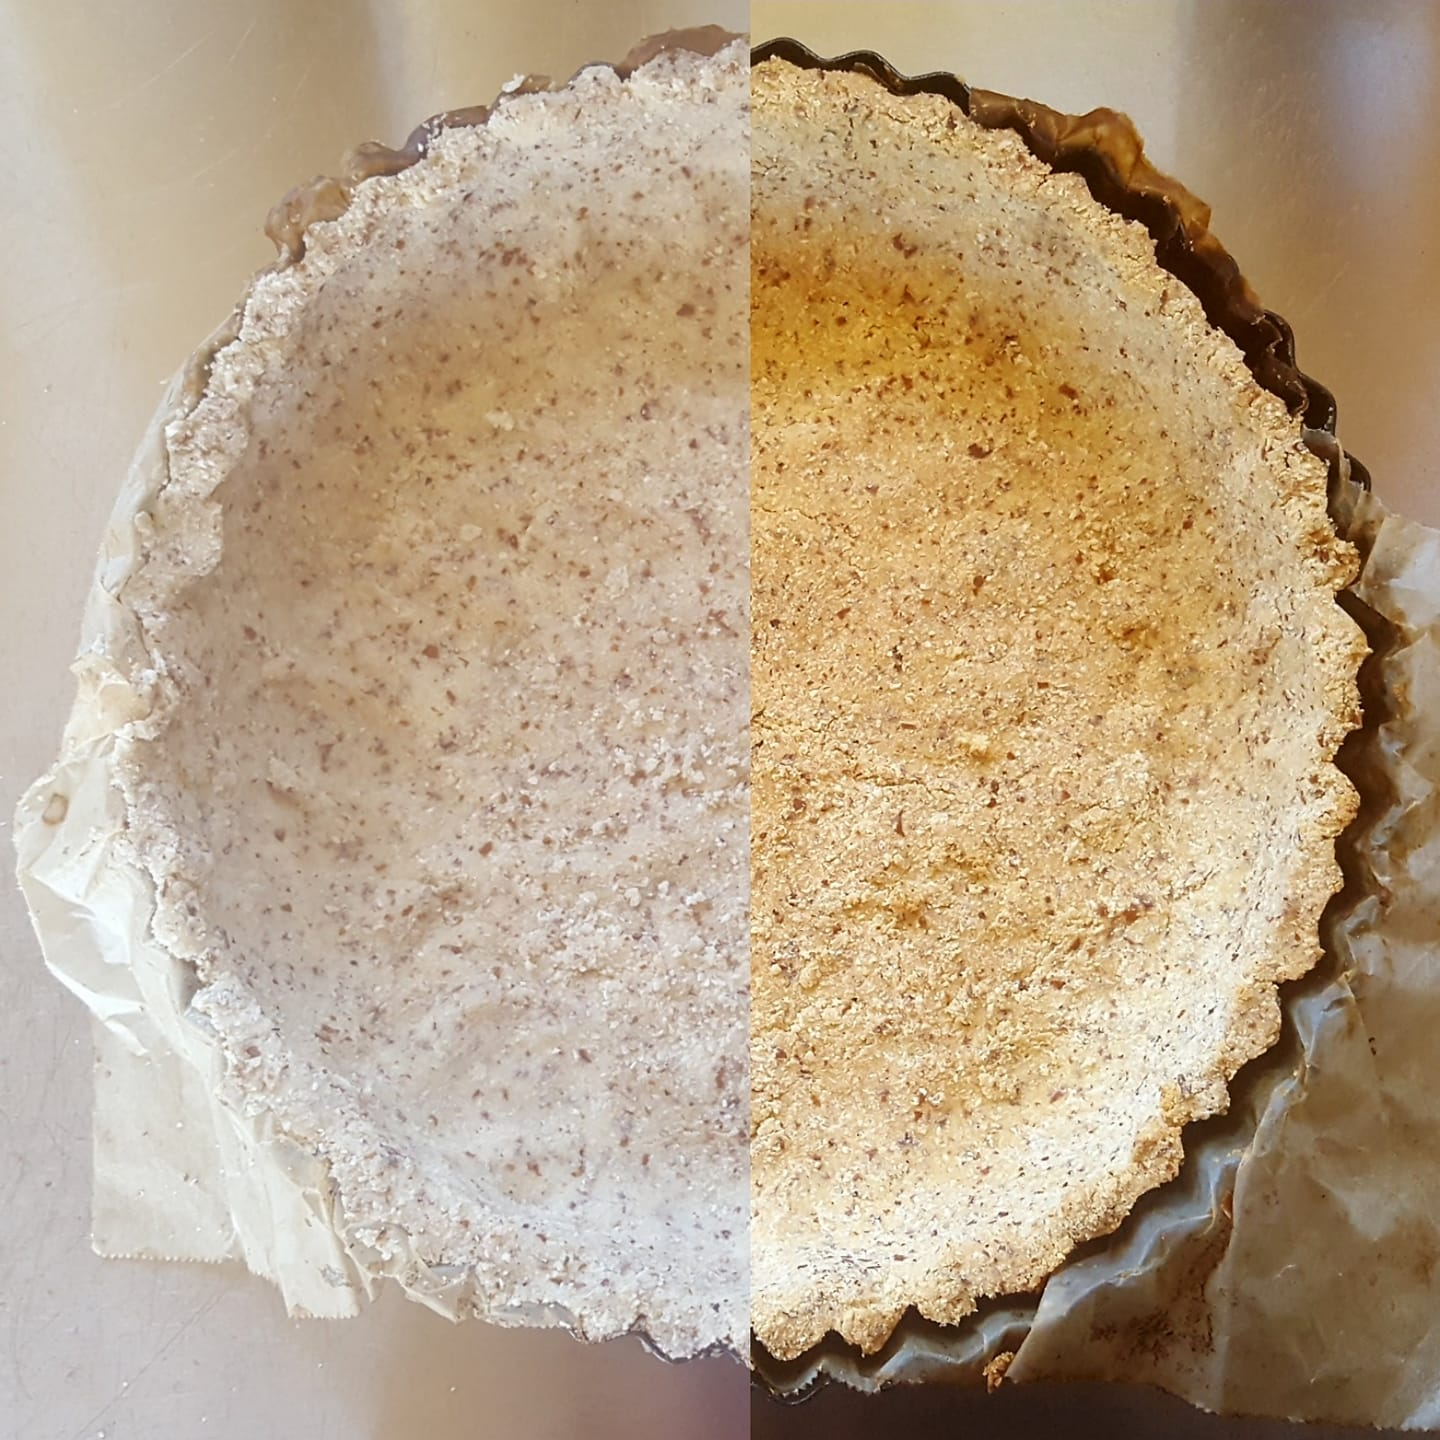 Grain free cricket pie crust. Before and after baking.